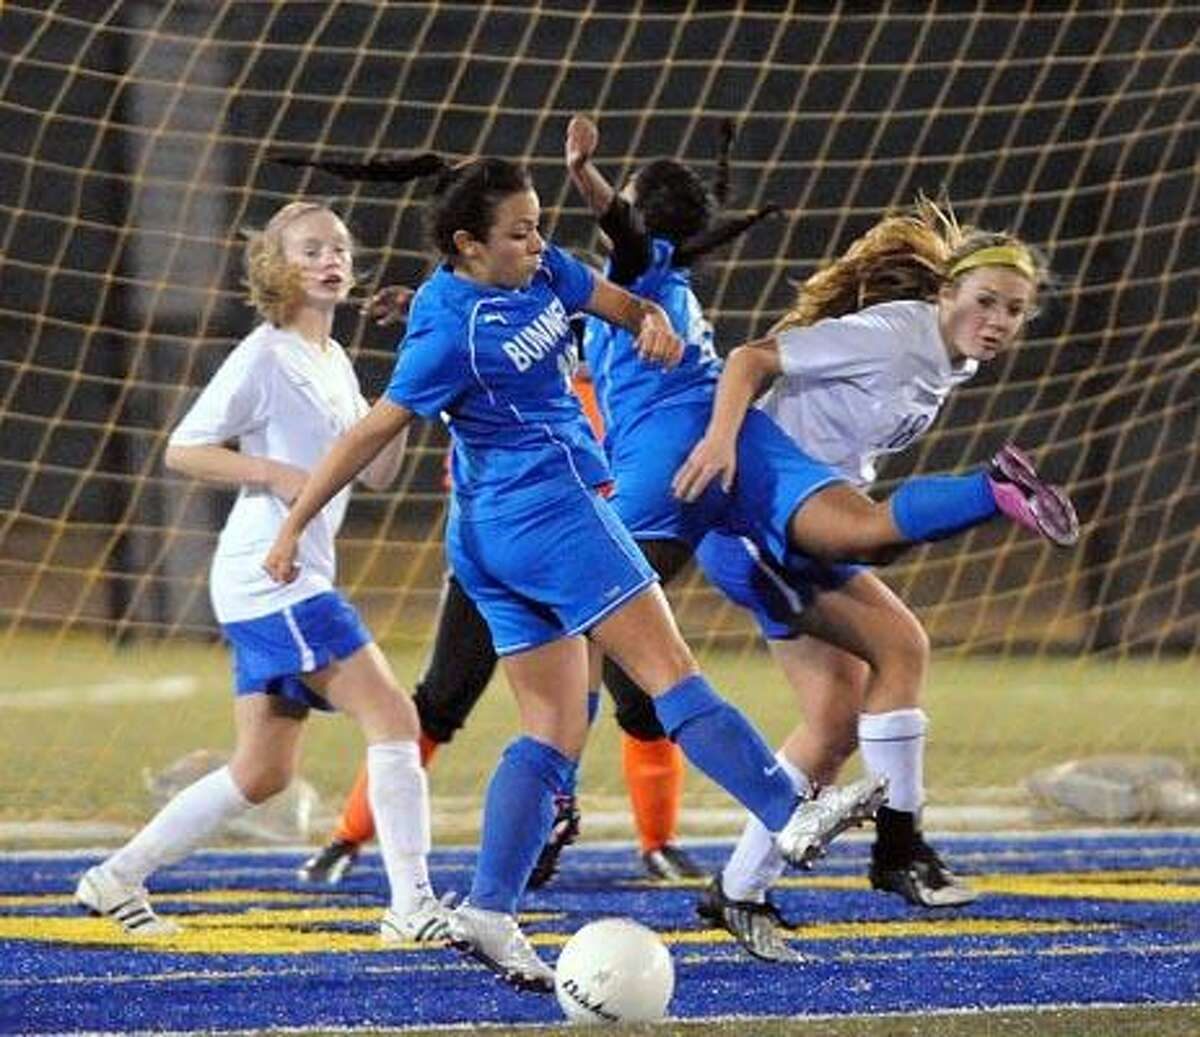 Bunnell's Alana Lorenzo (front) tries to get a handle on a corner kick near the Avon goal during the first period. (Photo by Peter Casolino/New Haven Register)